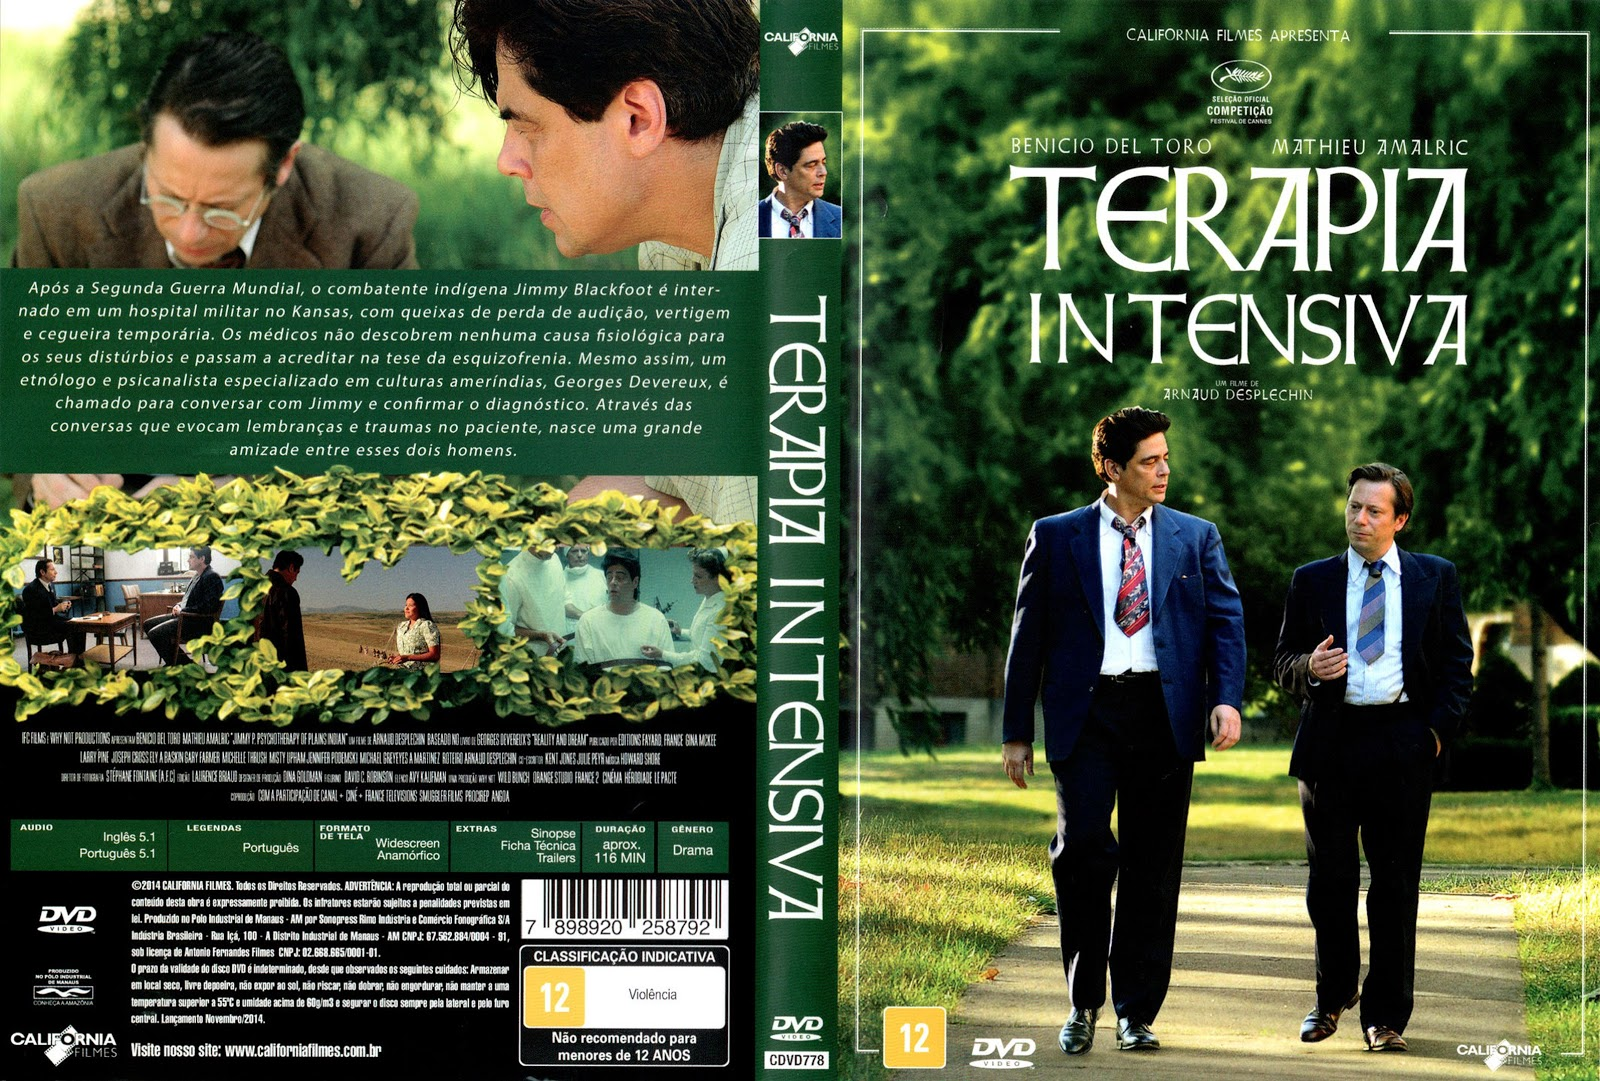 Capa DVD Terapia Intensiva